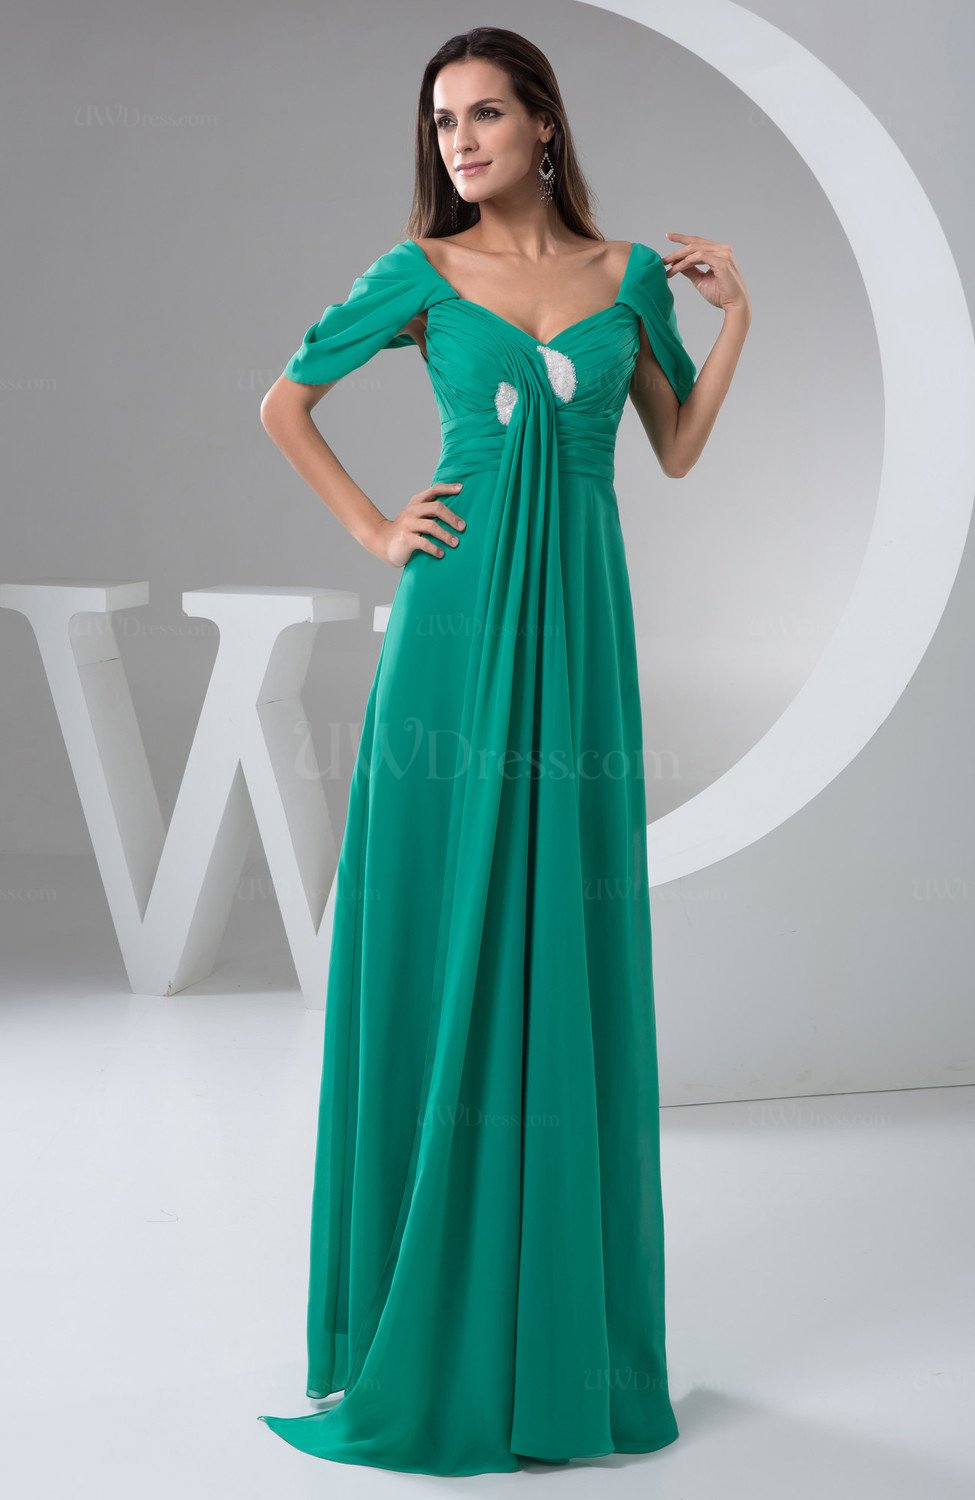 With sleeves bridesmaid dress chiffon open back summer for Wedding dress chiffon sleeves